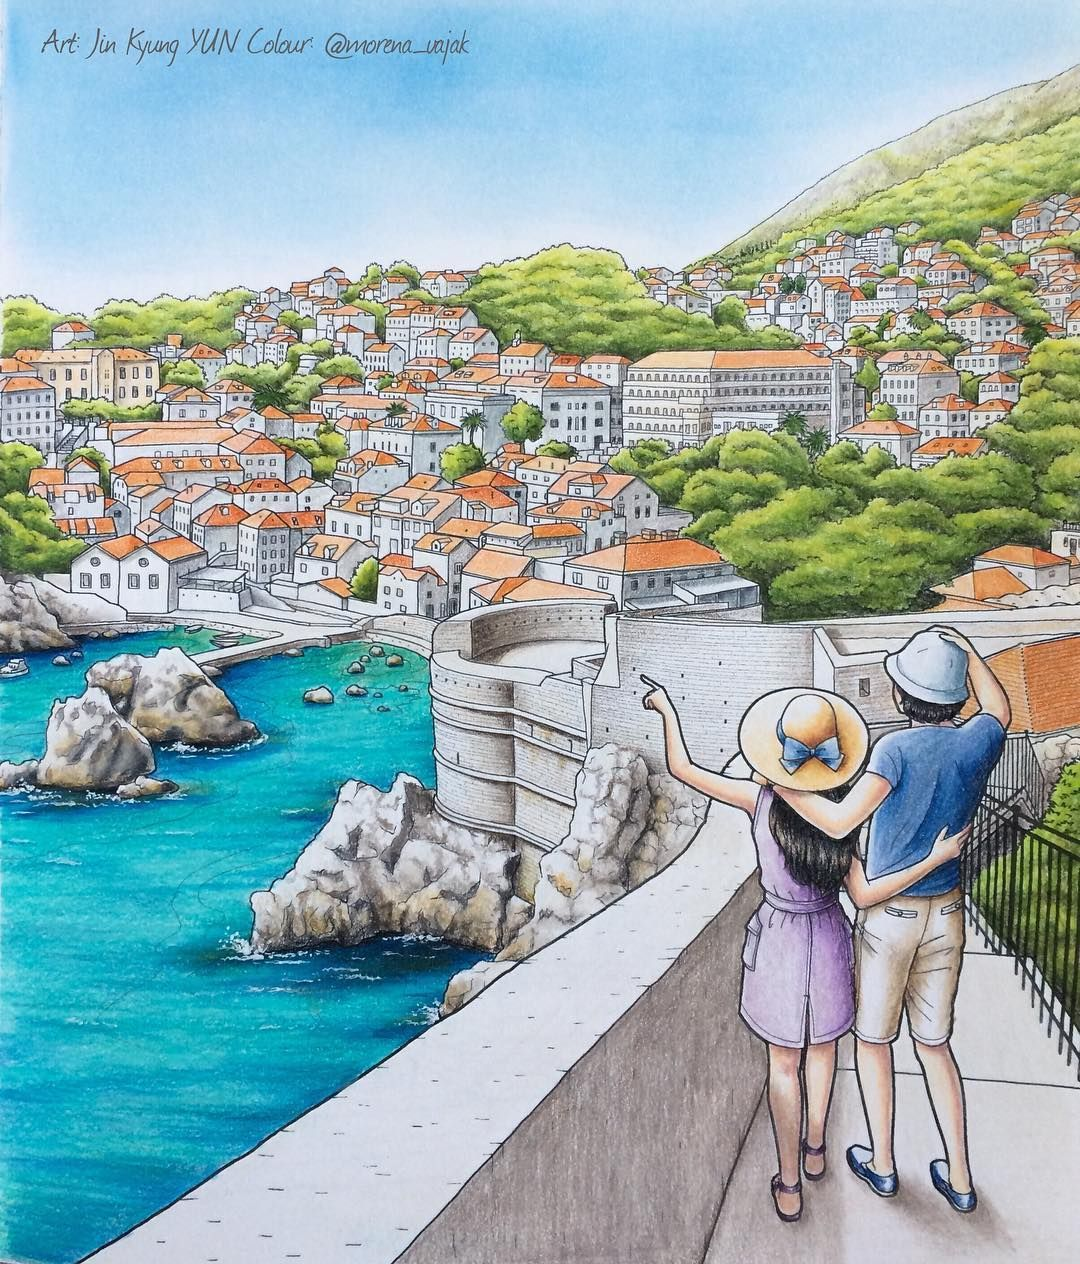 Dubrovnik From The Beginning By The Korean Artist Jin Kyung Yun